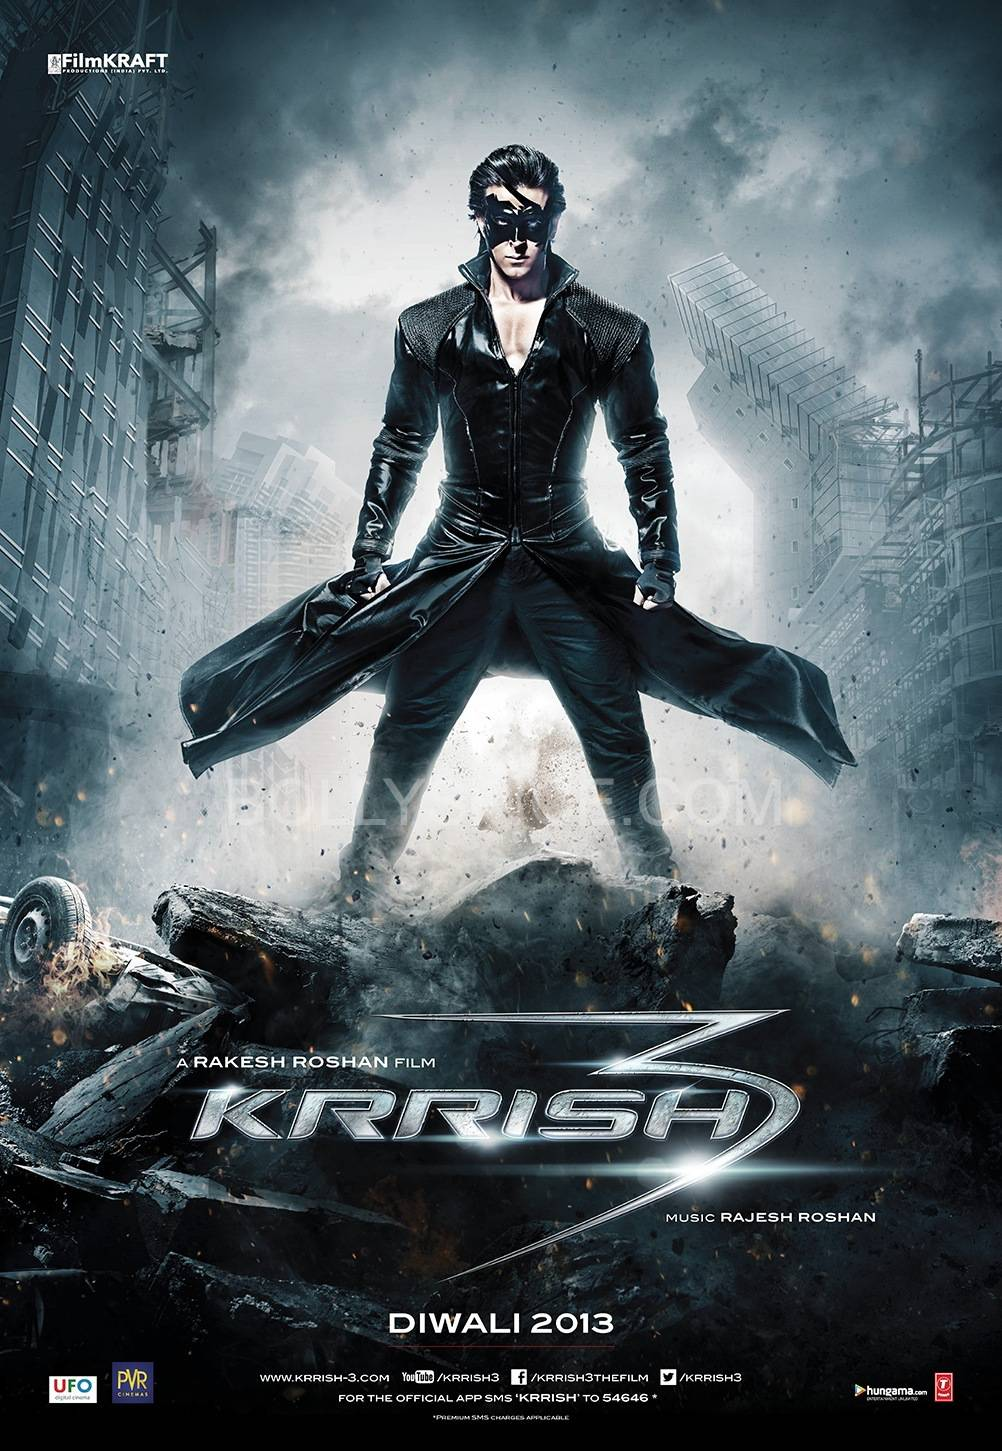 Krrish3 Poster 1 Blog Review: Krrish 3